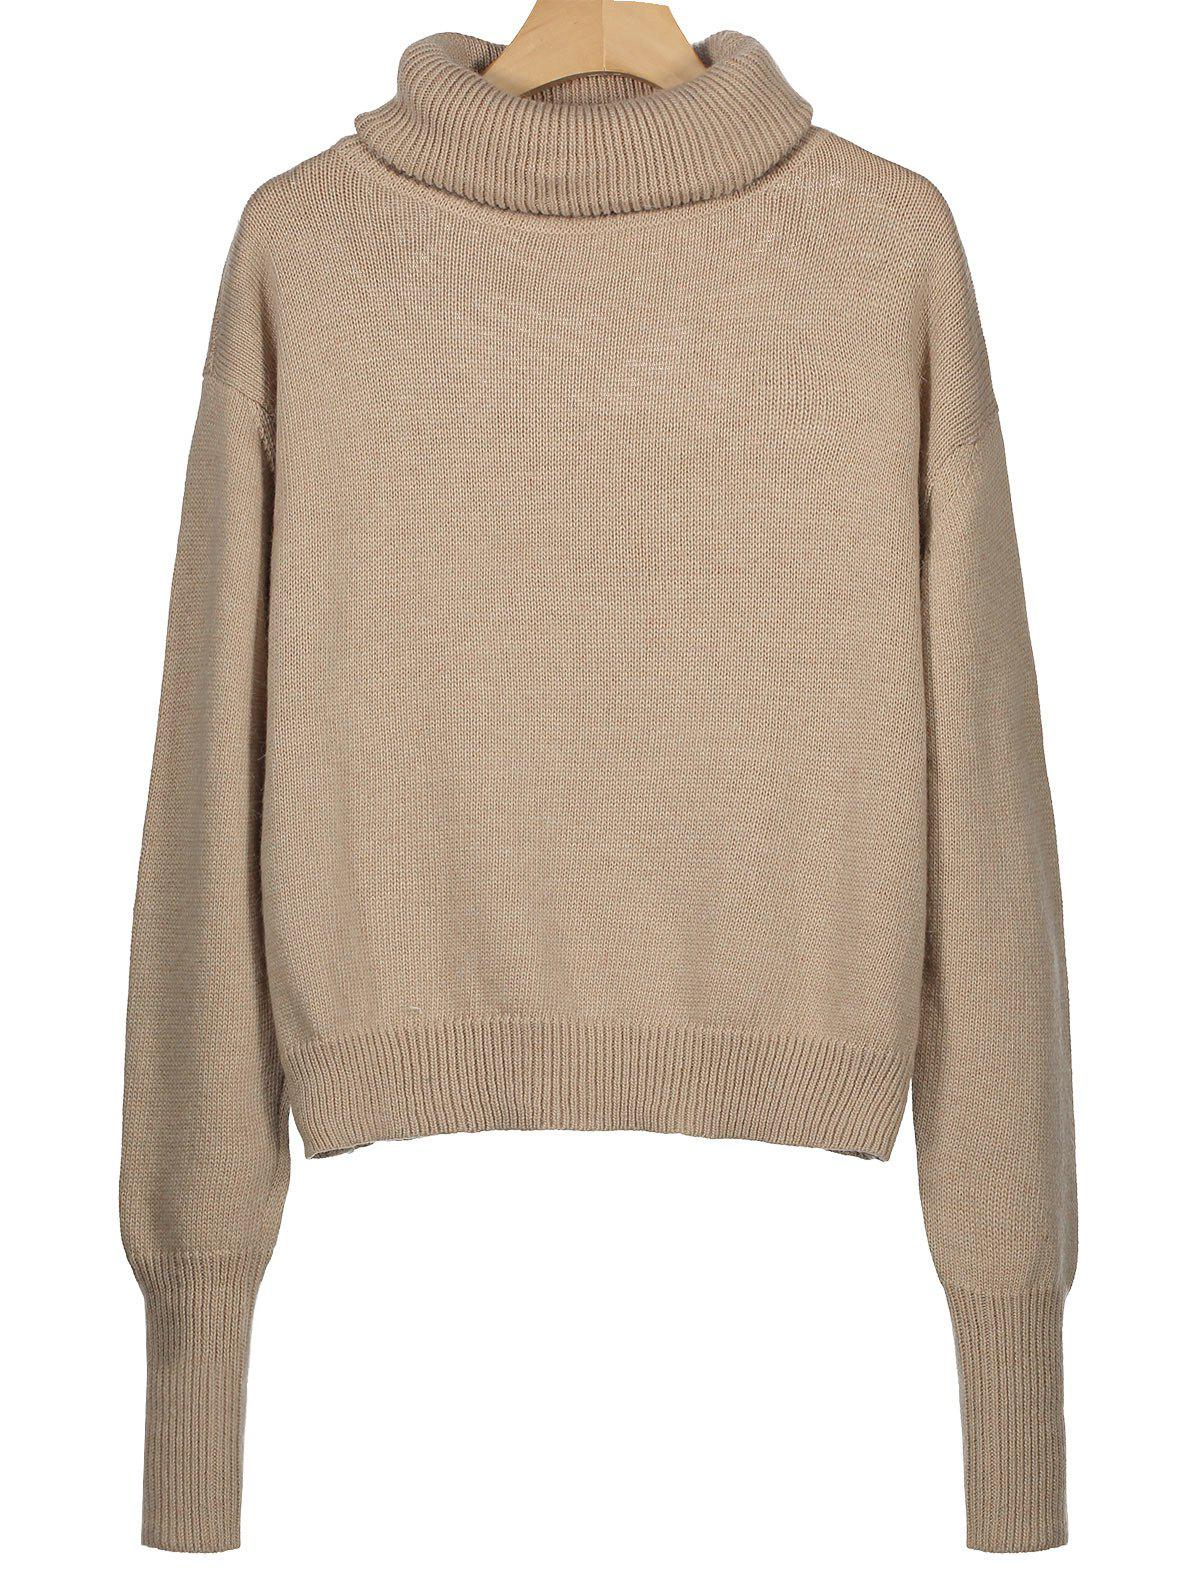 Ribbed Trim Turtleneck Sweater 232147901